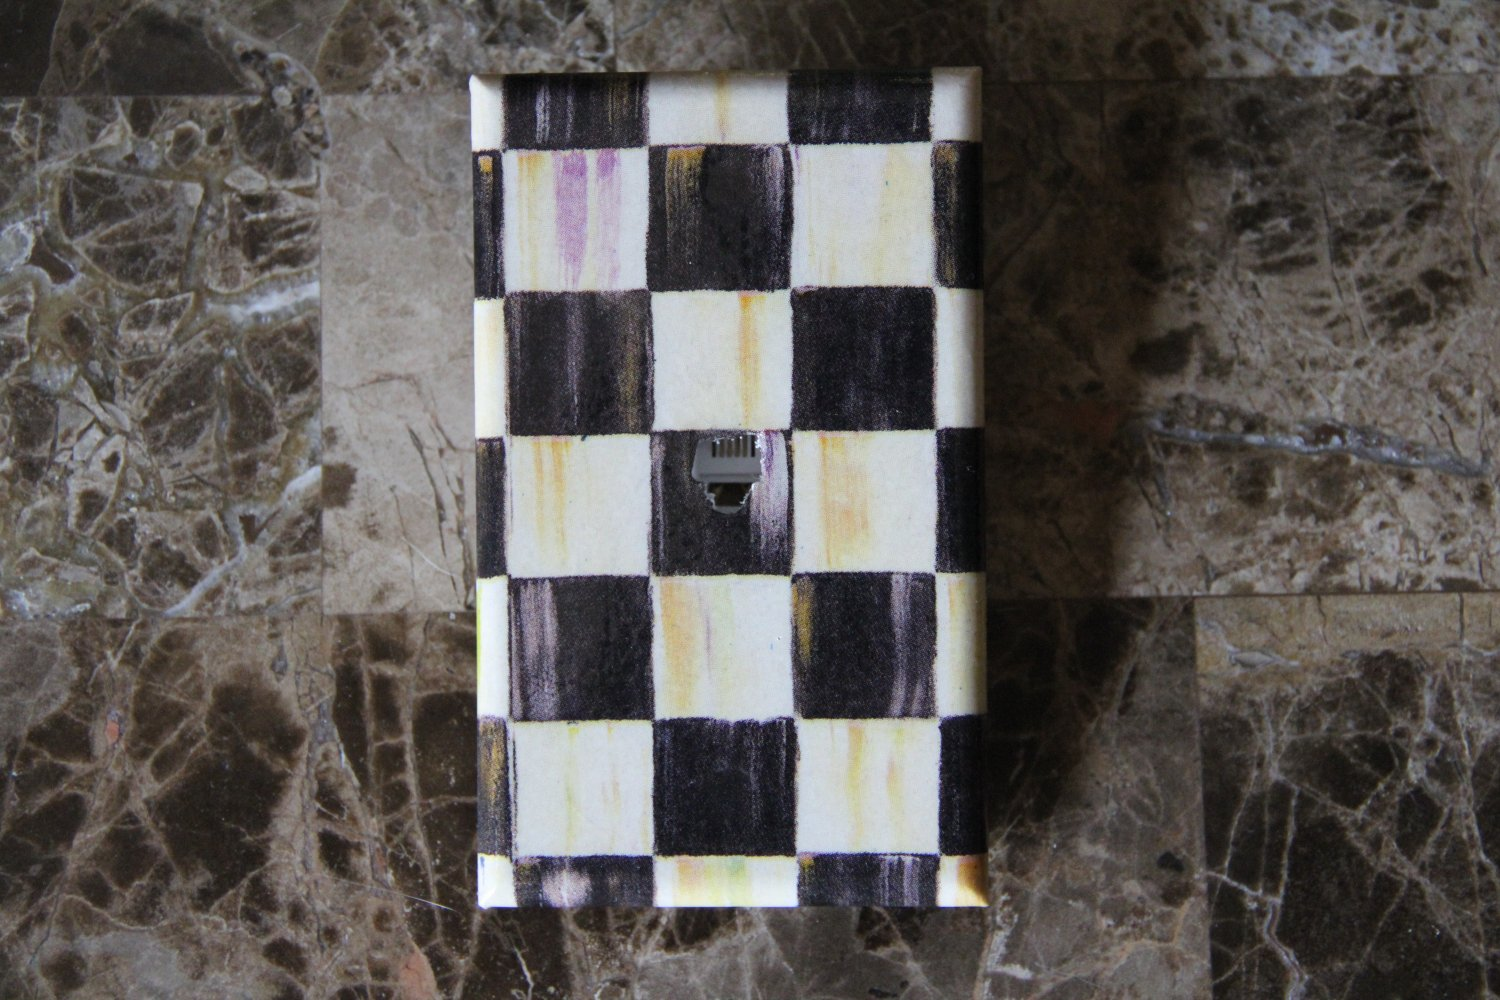 Phone Jack Plug Switch Plate made w/Mackenzie Childs Courtly Check Tissue paper